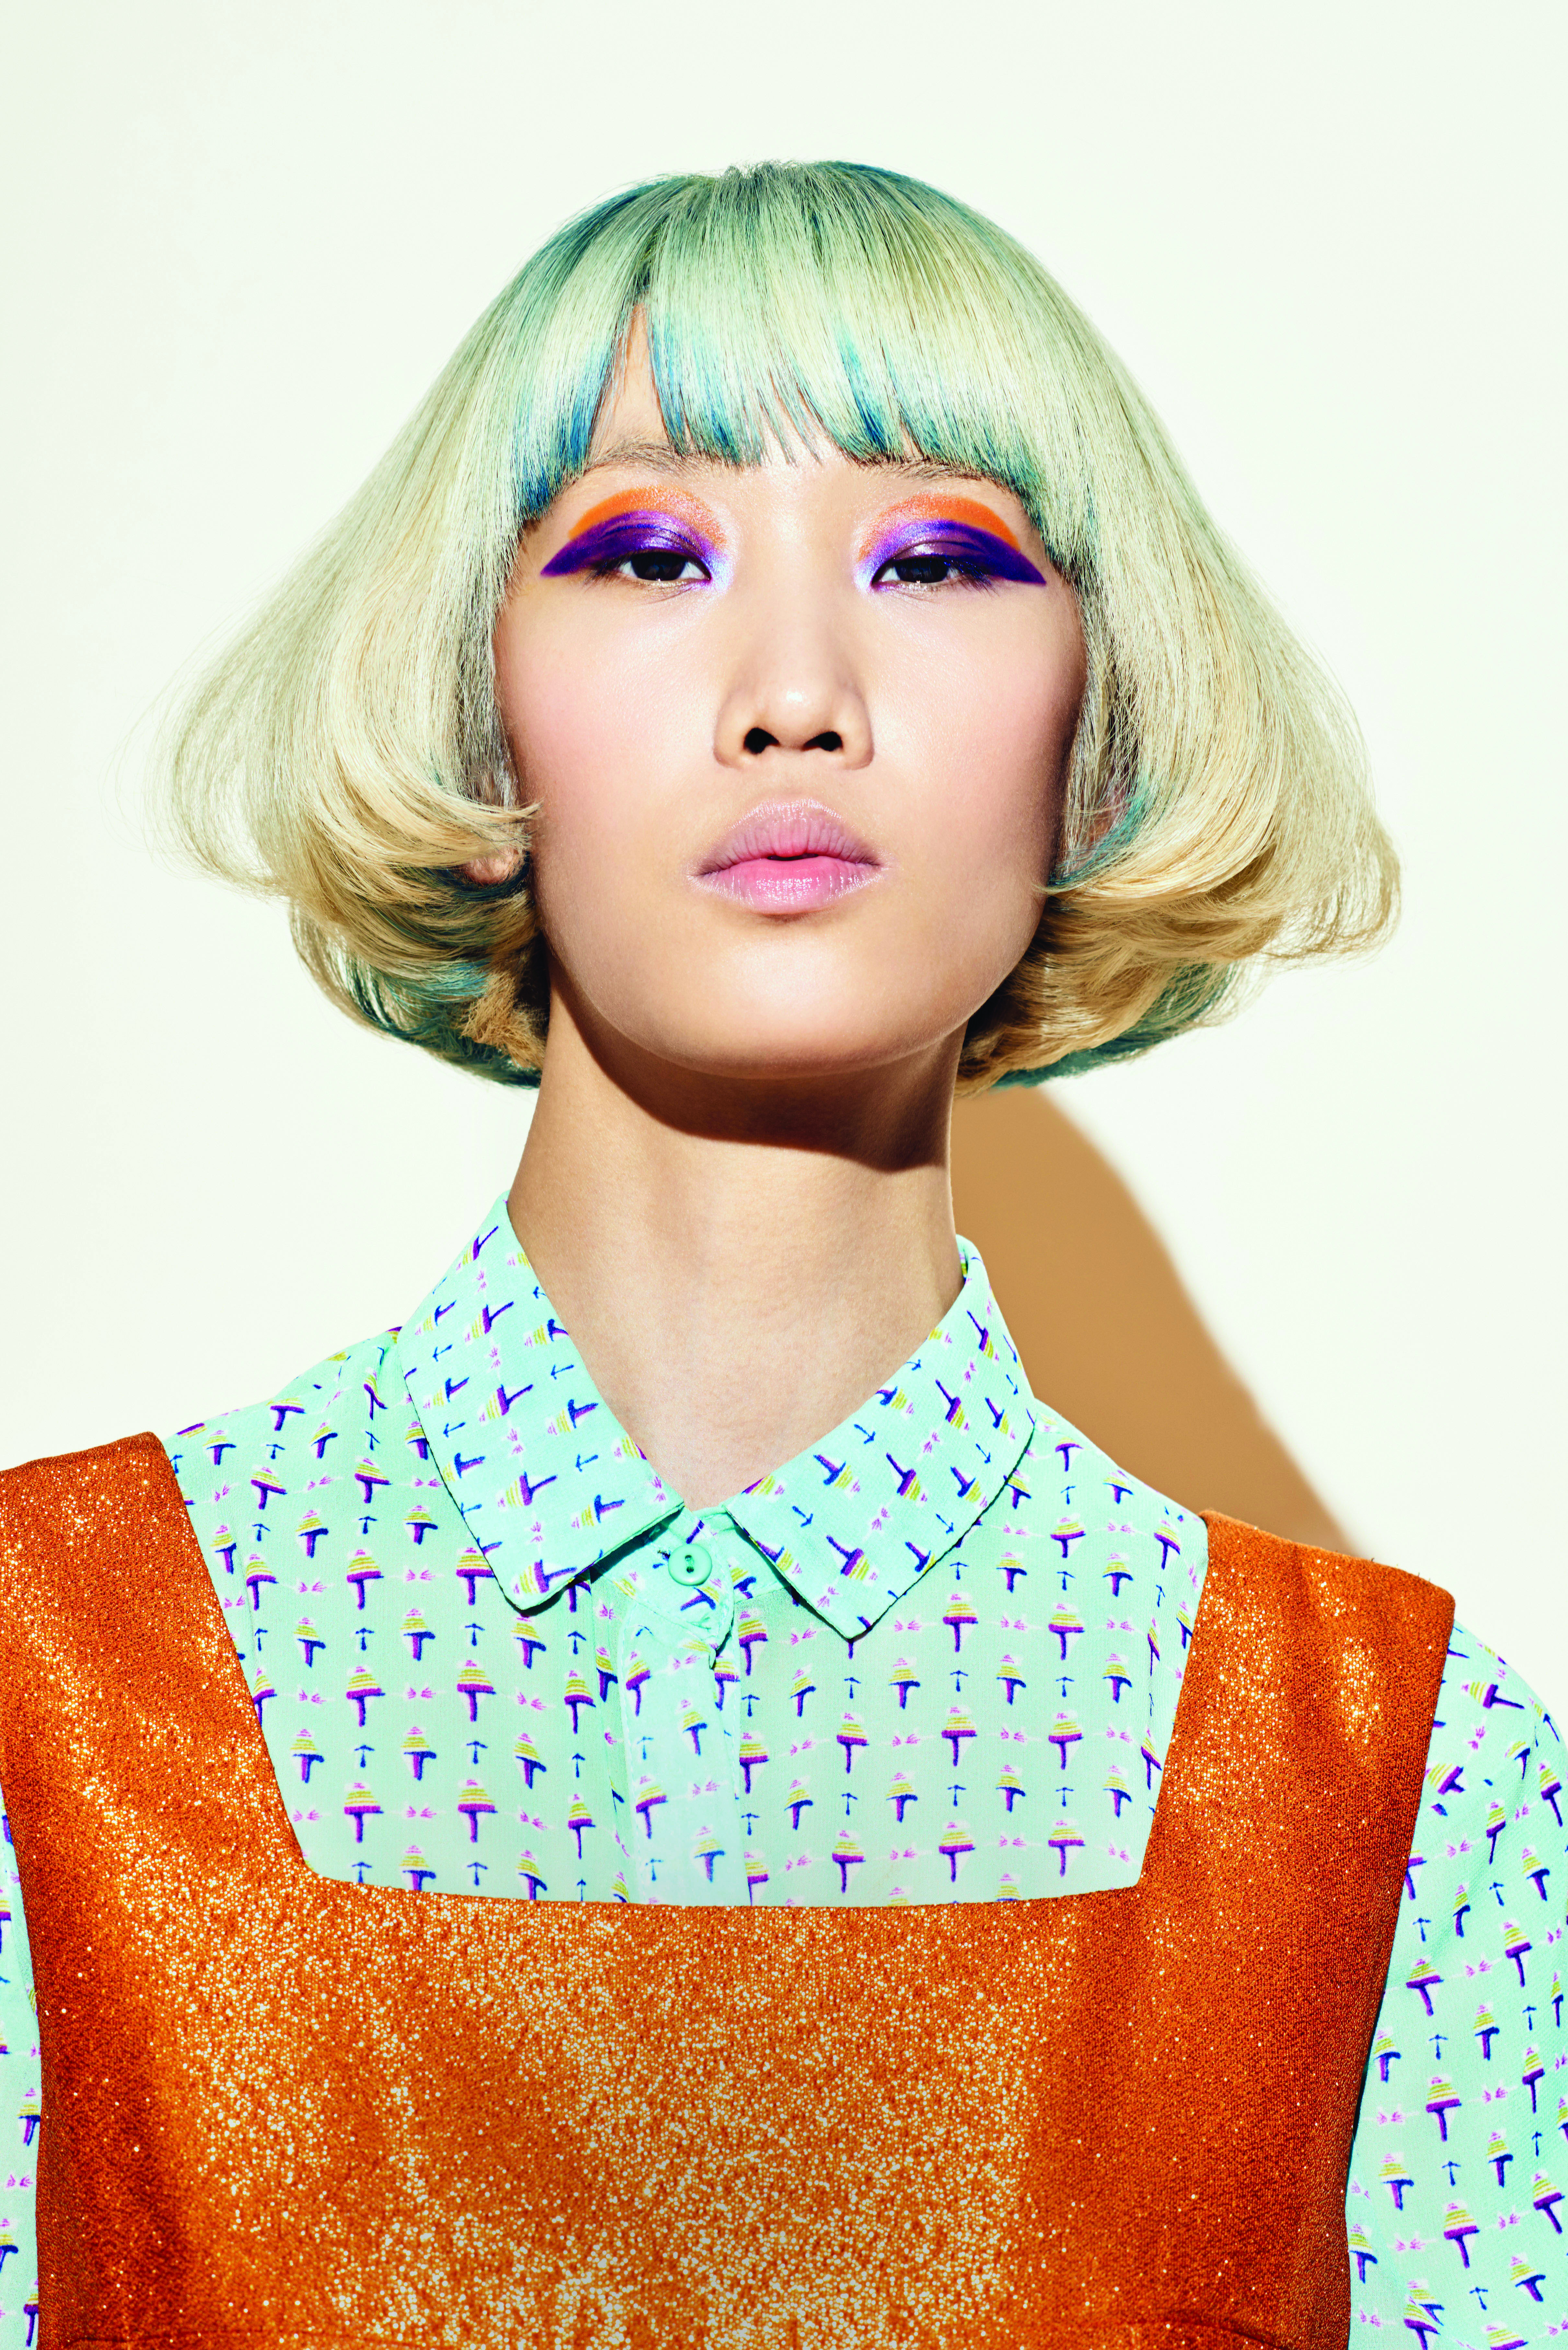 This sophisticated and rebellious look plays with a disconnection of solids and brights.